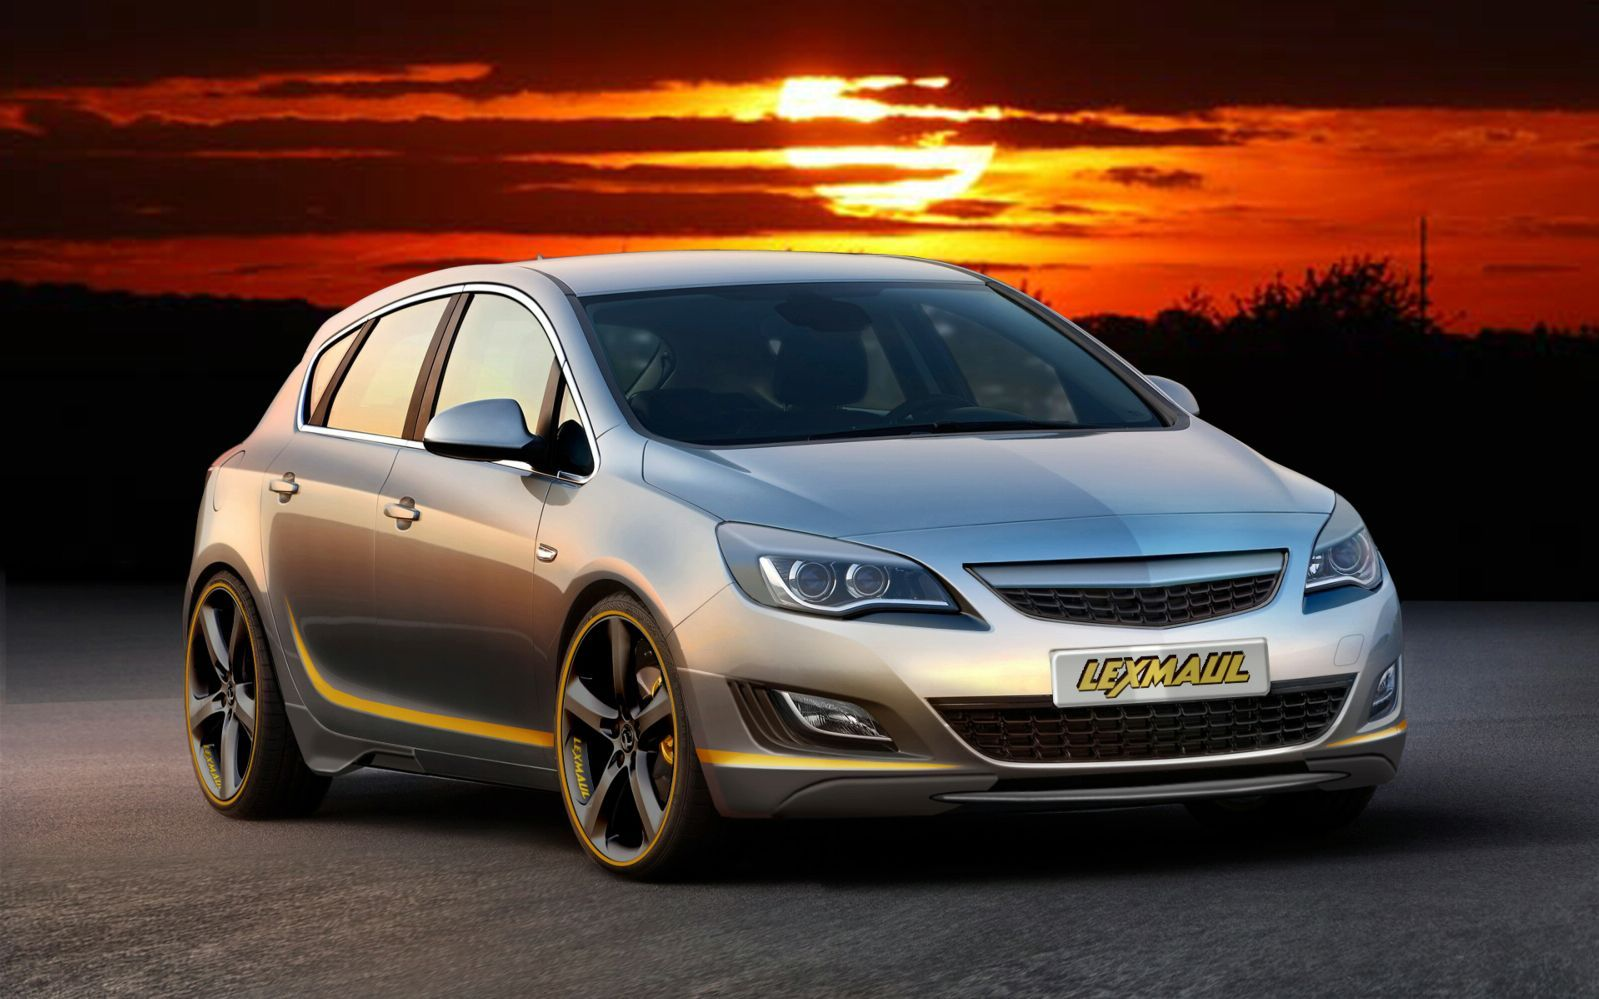 Lexmaul Opel Astra wallpapers - Auto Power Girl